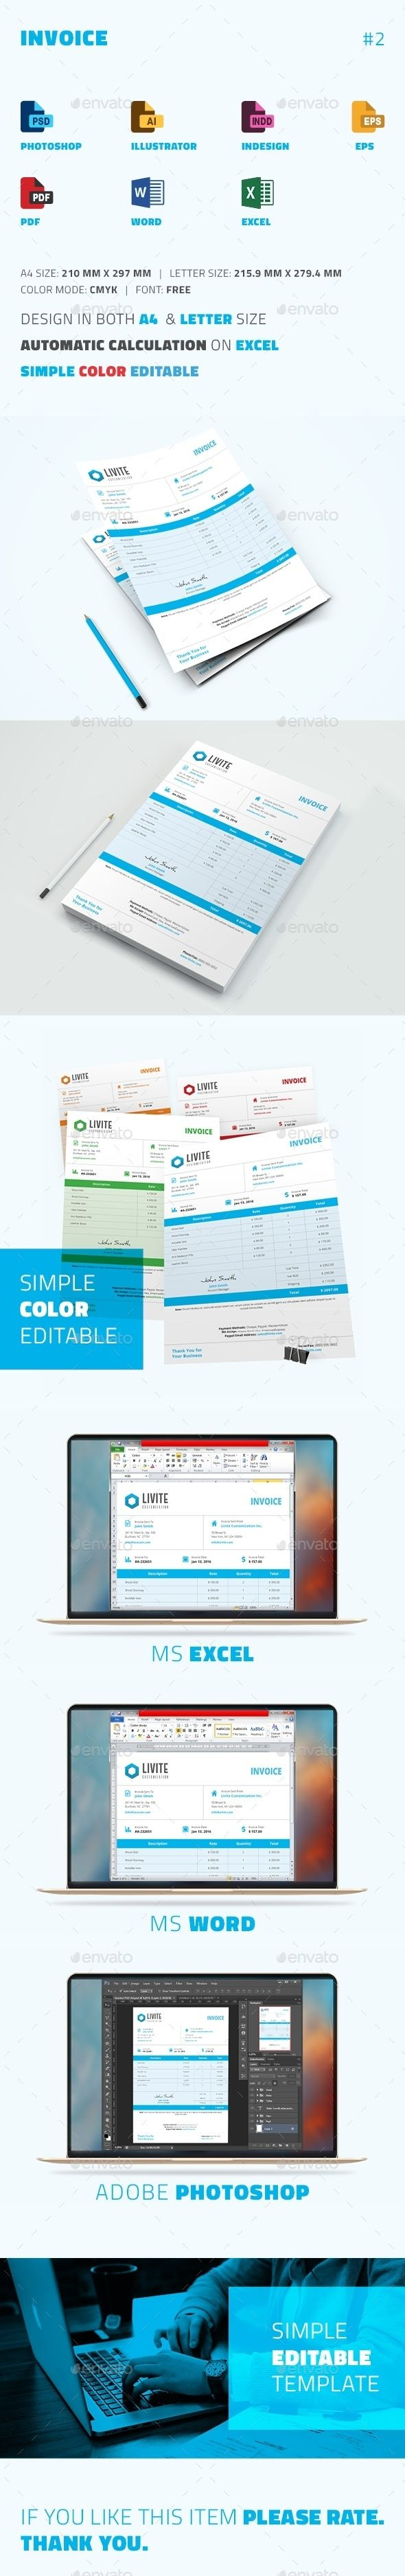 Invoice Page Magnificent 214 Best Invoice Templates Excel Images On Pinterest  Invoice .